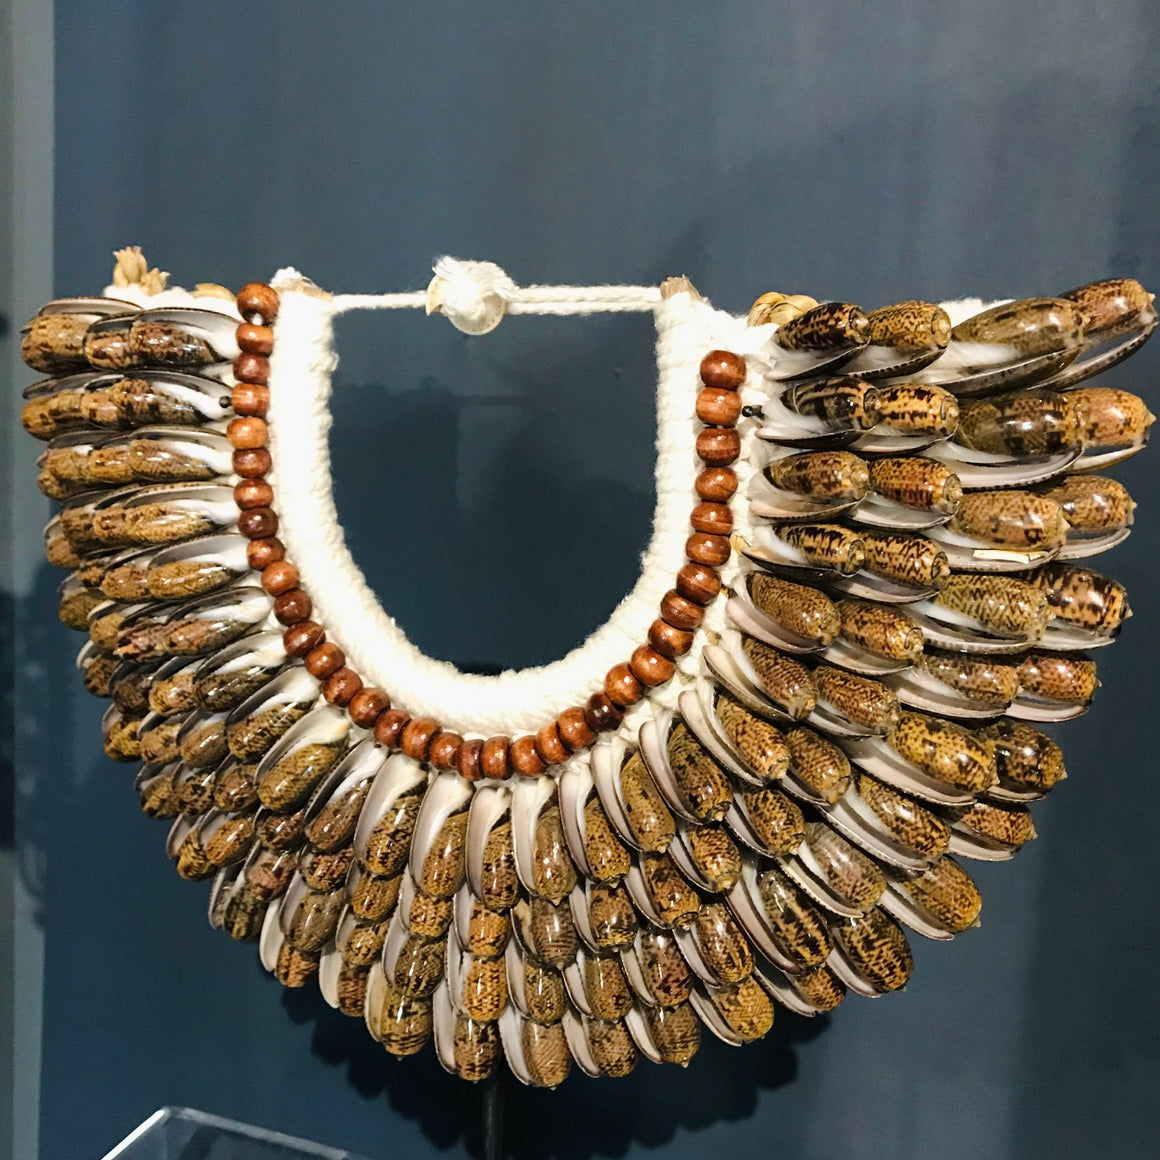 Decorative Shell necklaces from Papua New Guinea